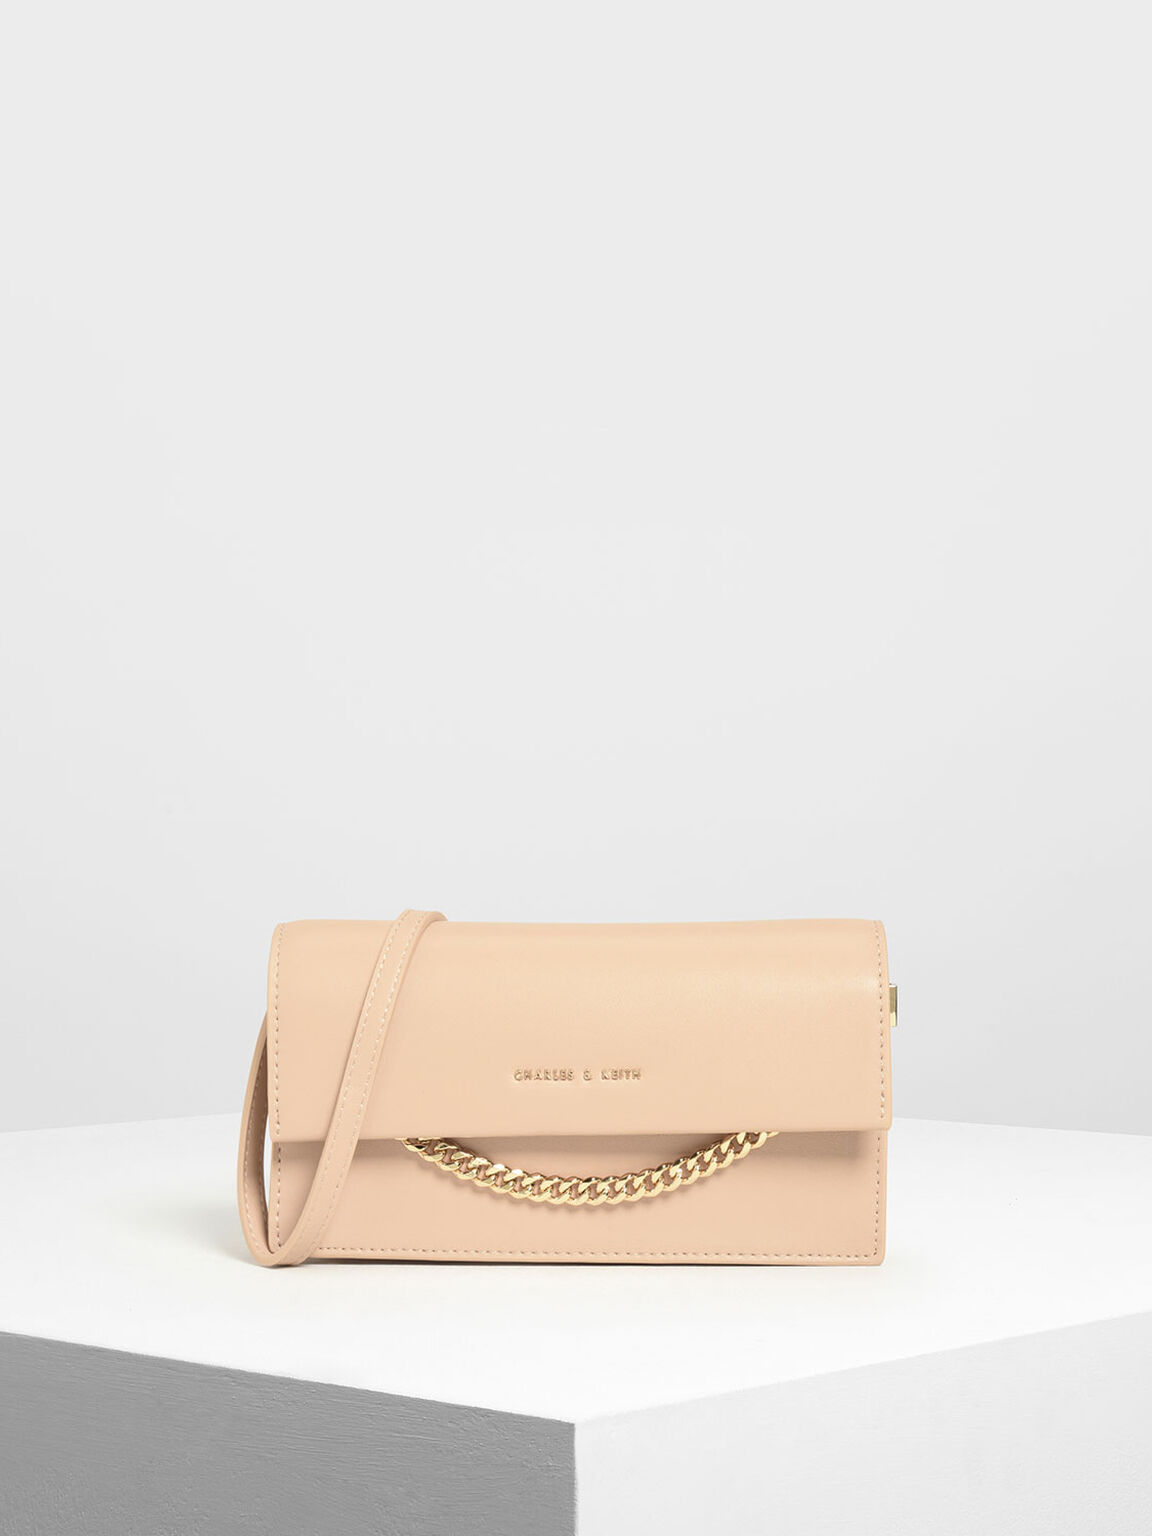 Chain Link Long Wallet, Beige, hi-res